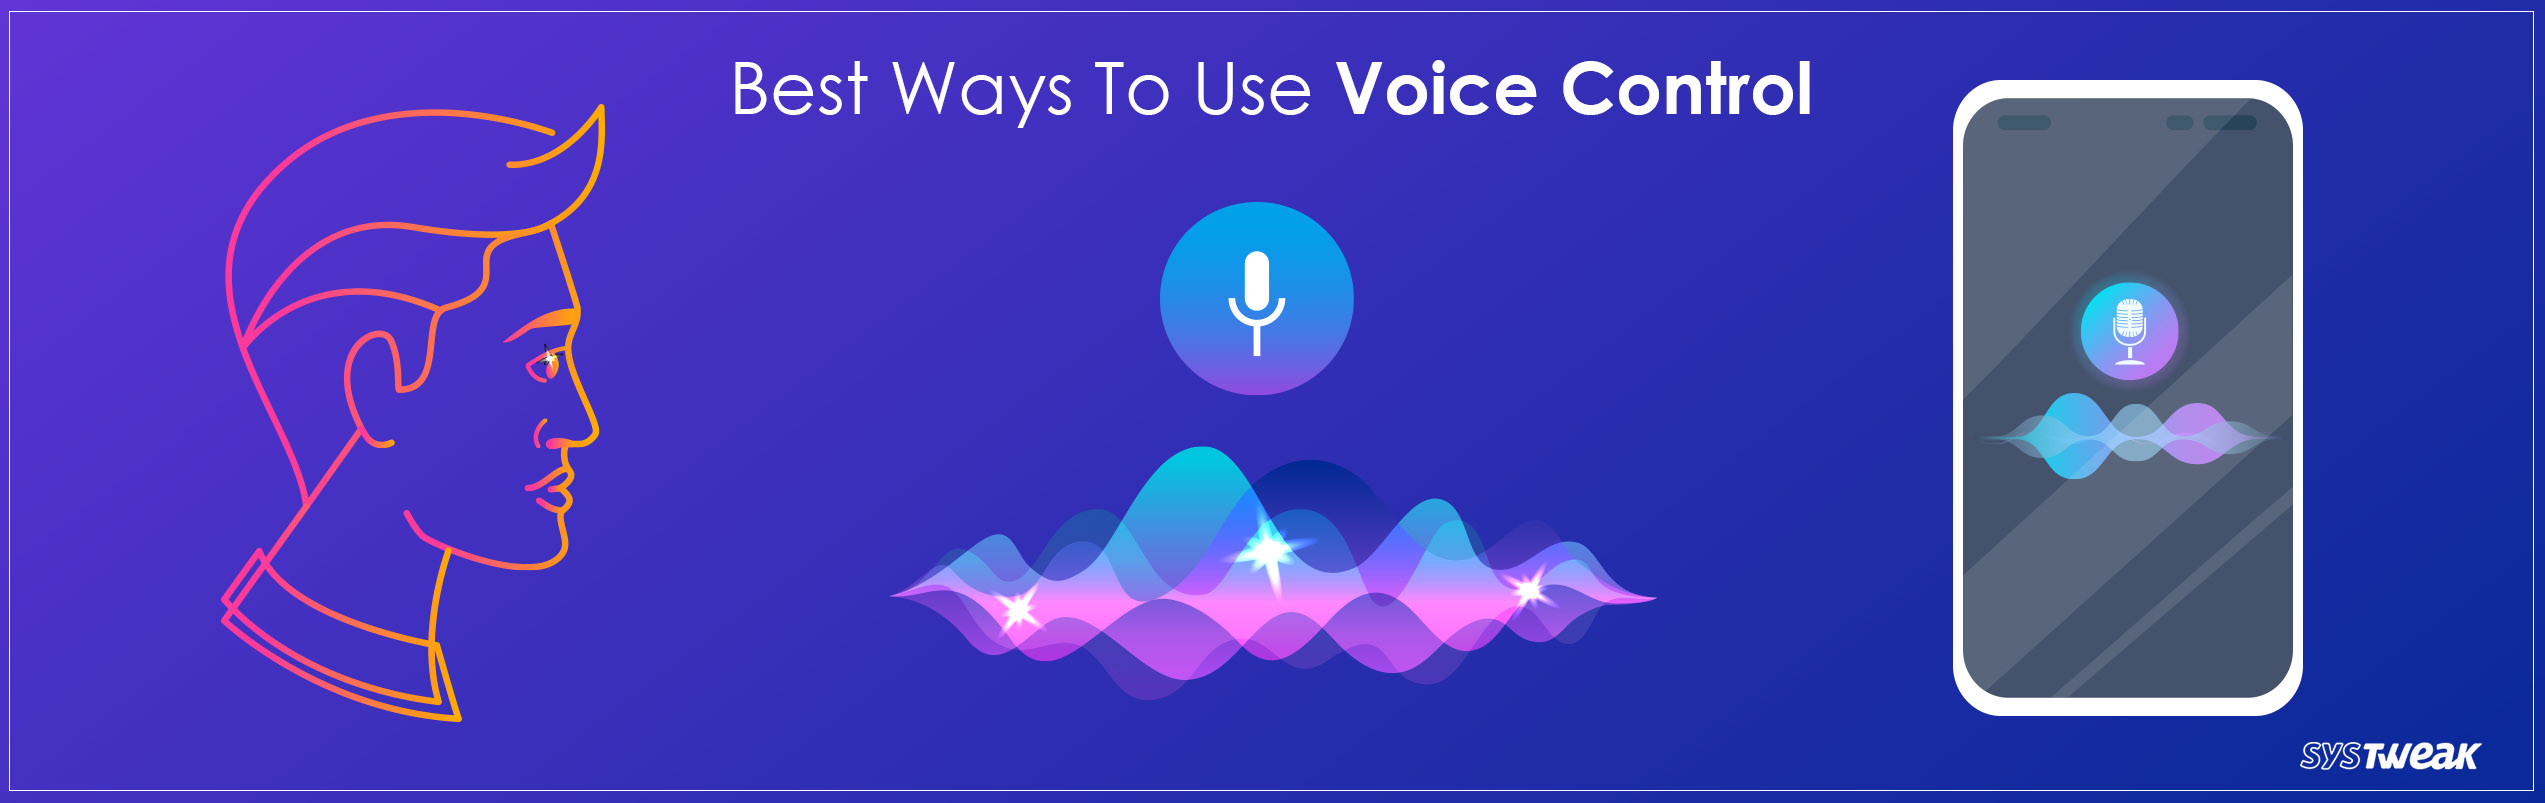 Best Ways To Use Voice Control